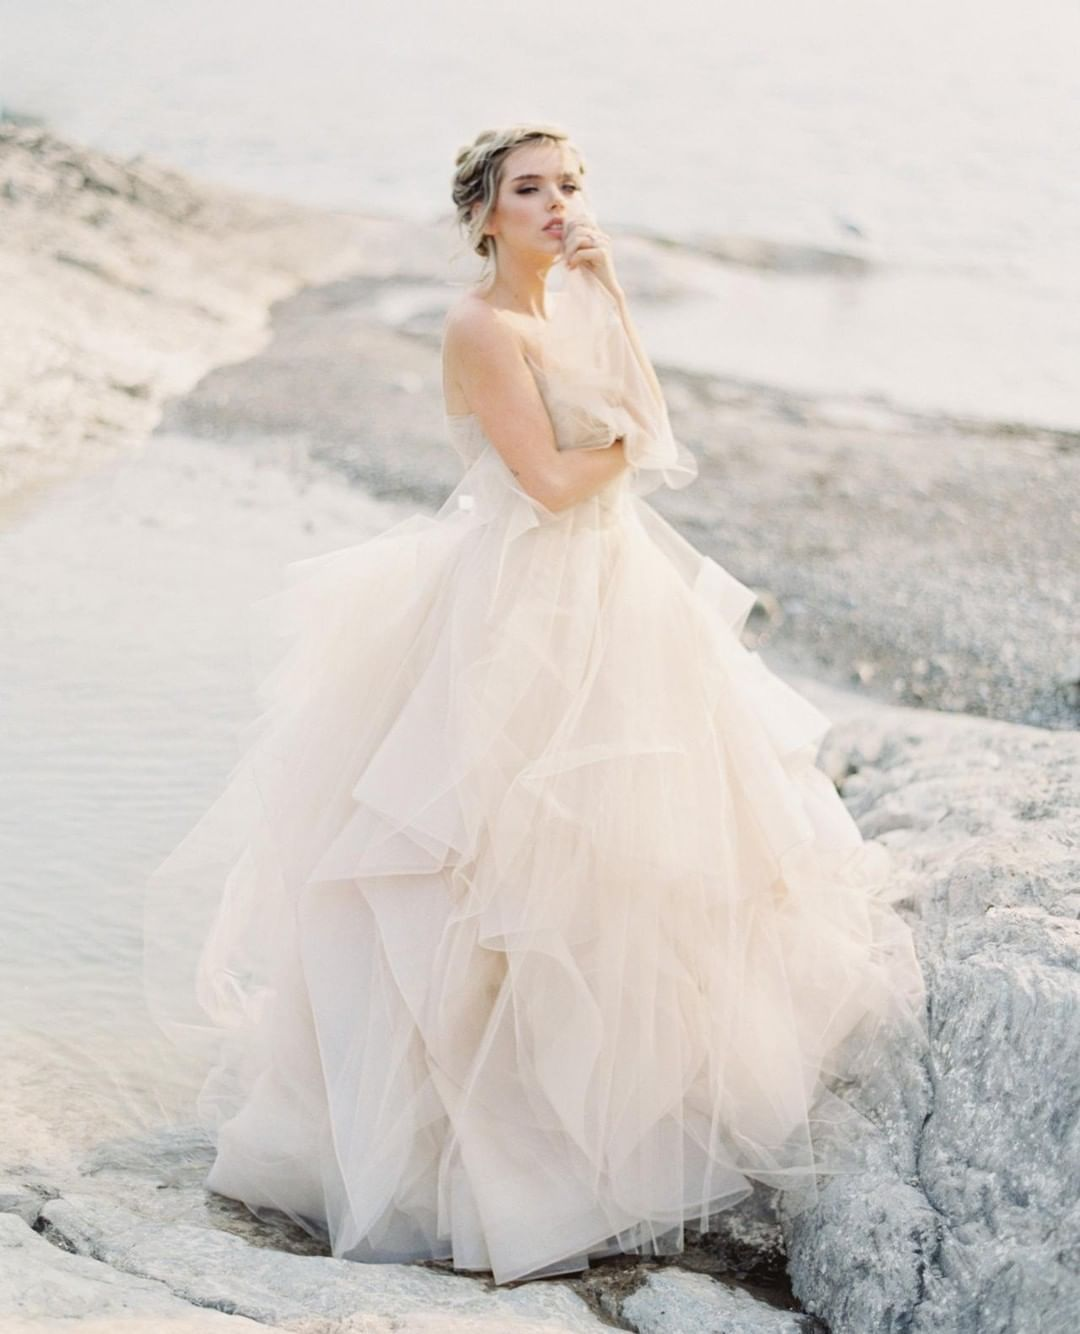 Sara Russell Wedding Sparrow On Instagram Colored Wedding Dresses Are Still My Favo Bridal Gown Inspiration Wedding Dresses Blush Wedding Dress Inspiration